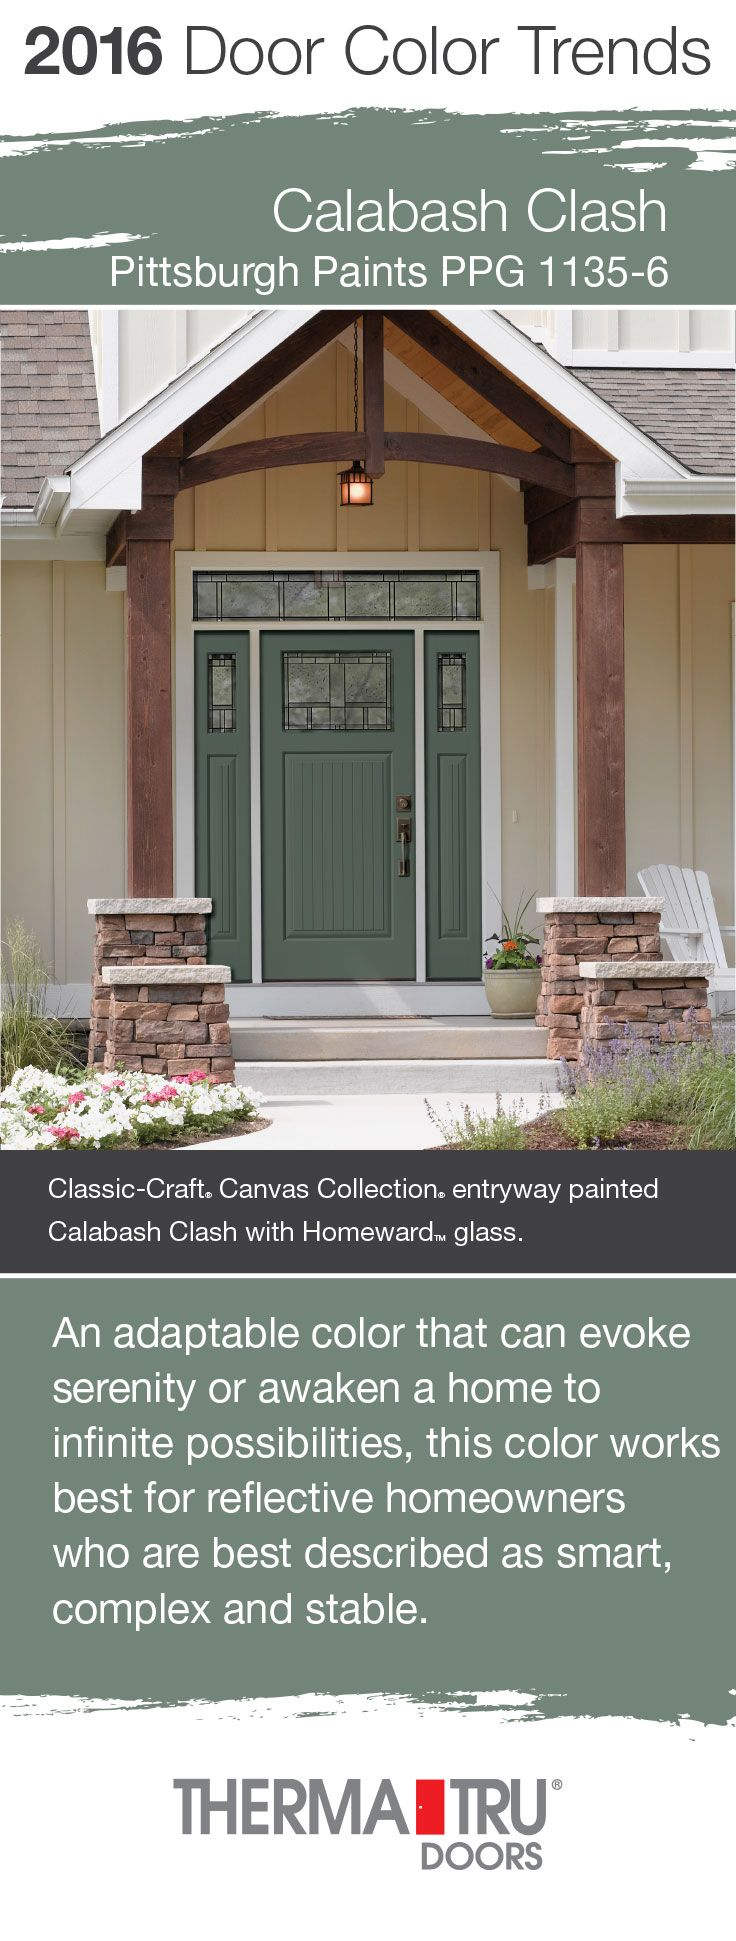 Calabash Clash by Pittsburgh Paints   one of the front door color trends  for 2016  Show Stopper by Sherwin Williams   one of the front door color  . Front Door Color Trends 2014. Home Design Ideas